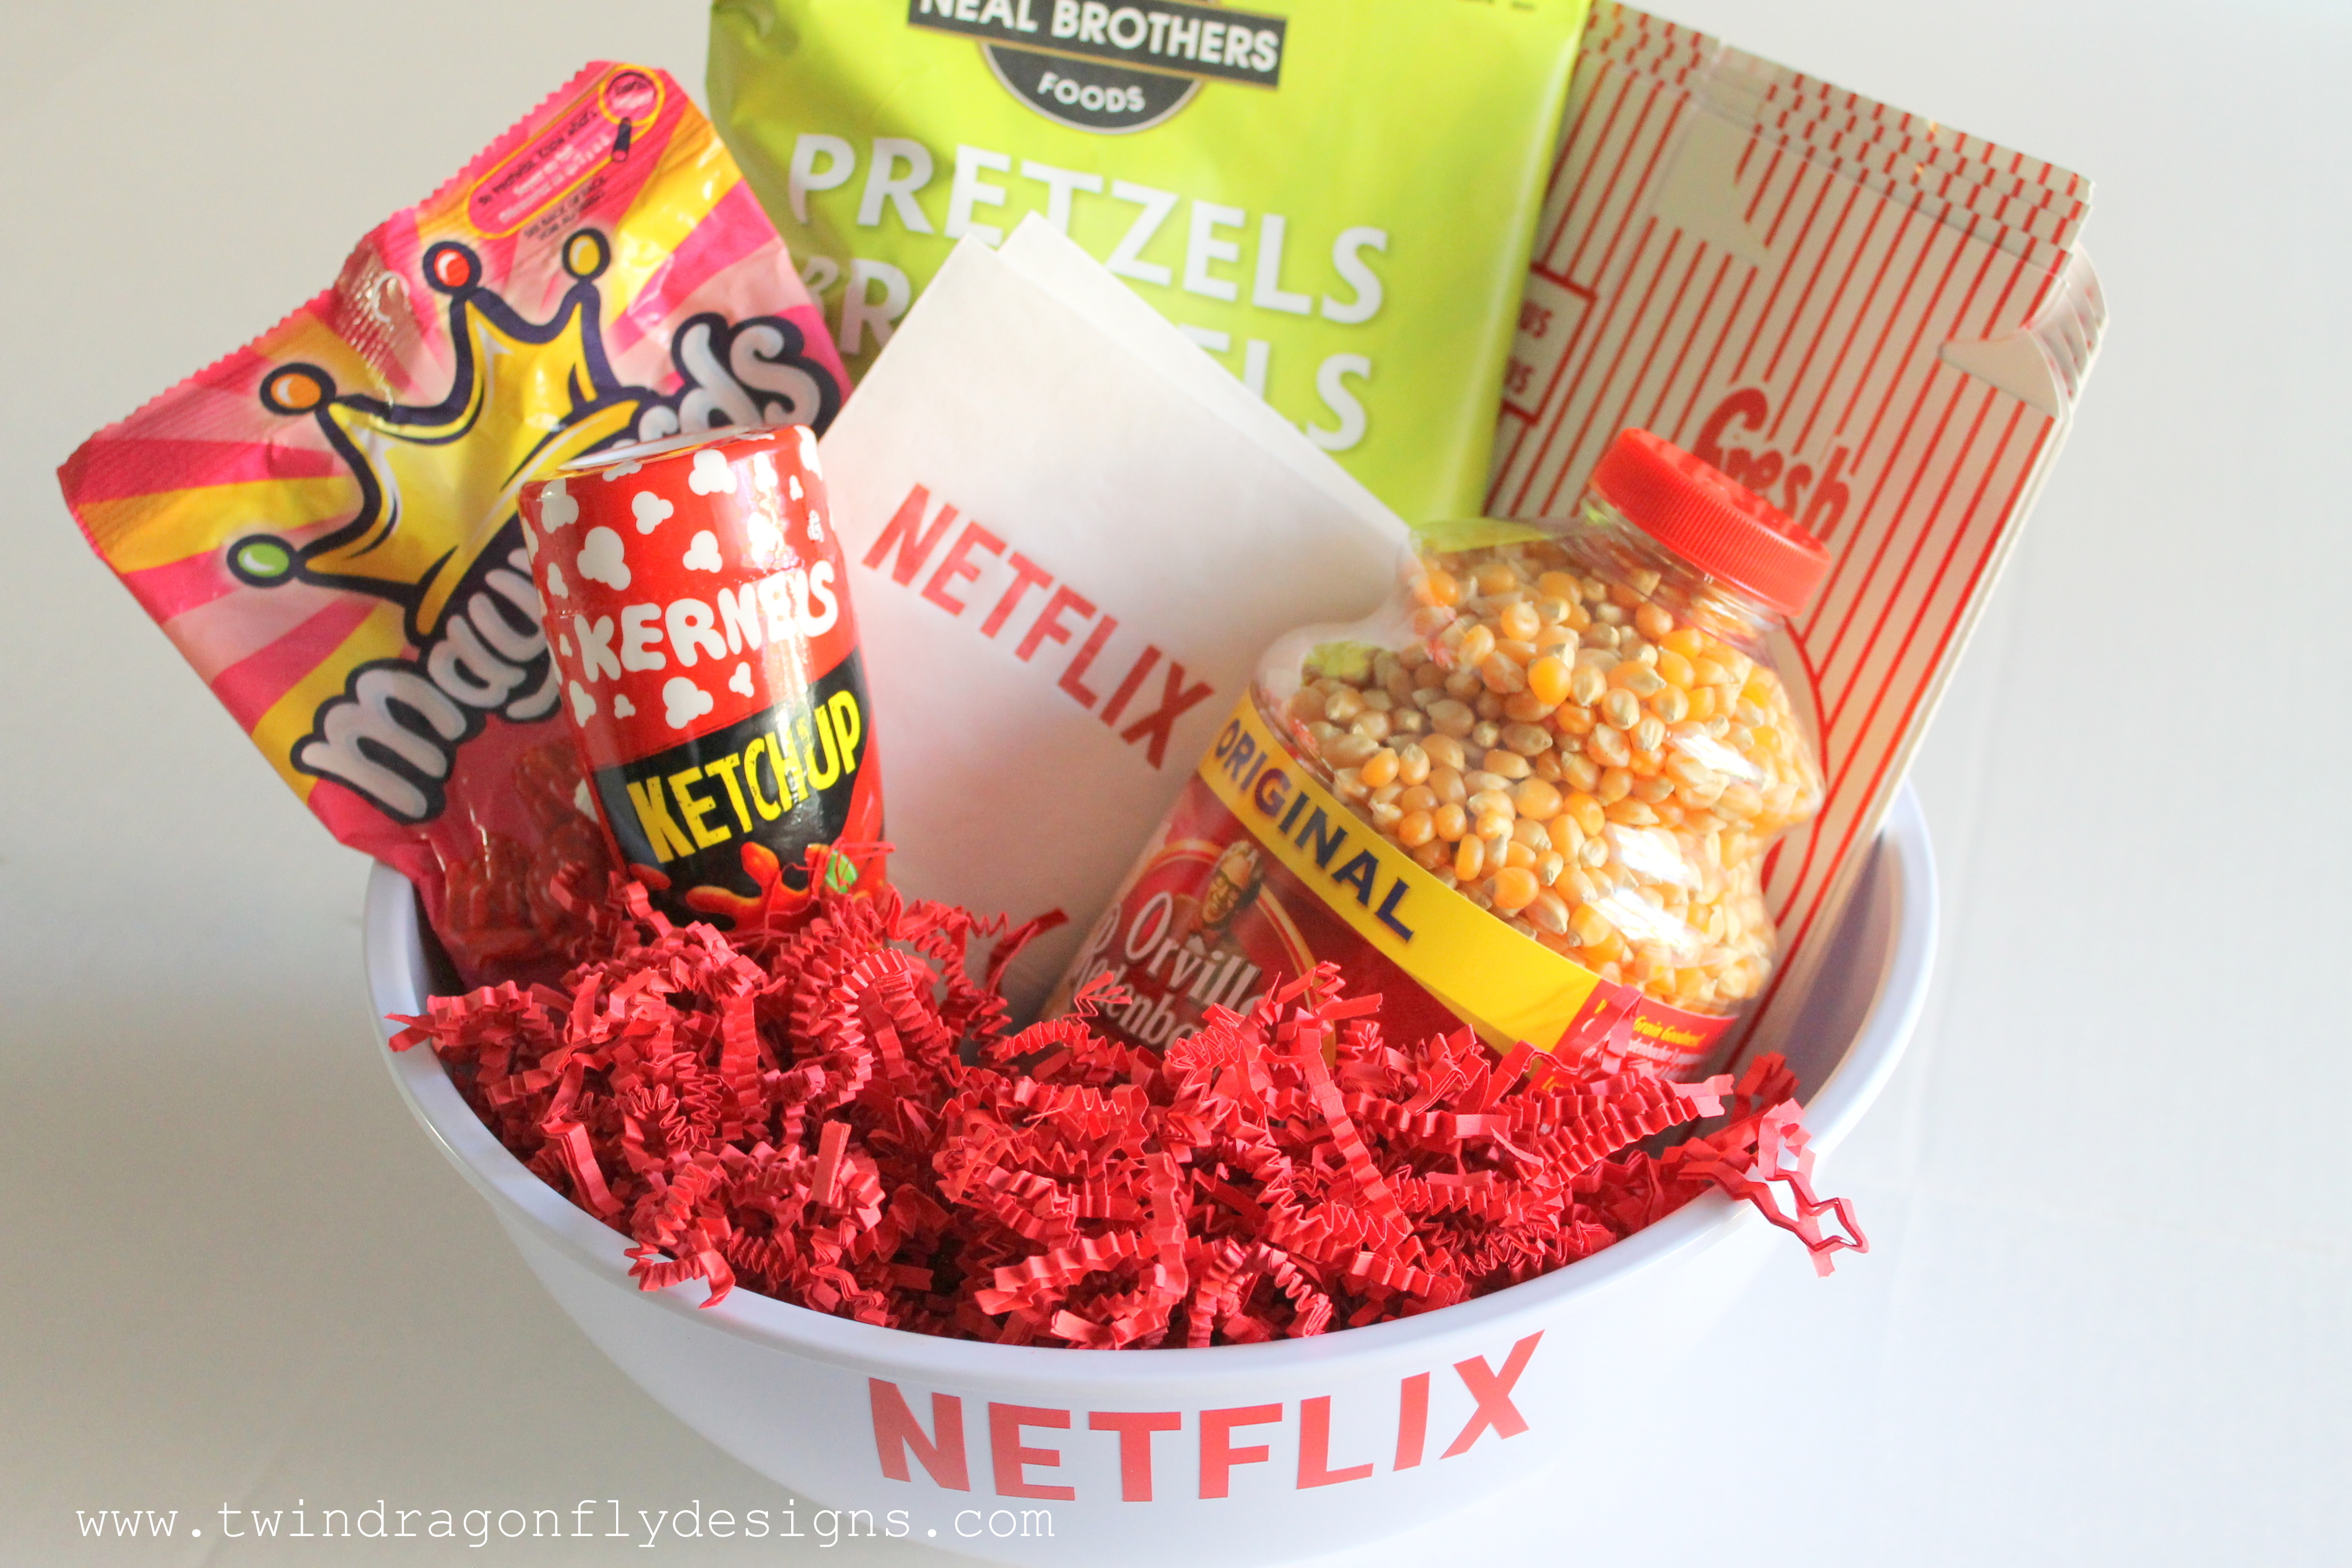 Christmas Gift Idea with Netflix » Dragonfly Designs